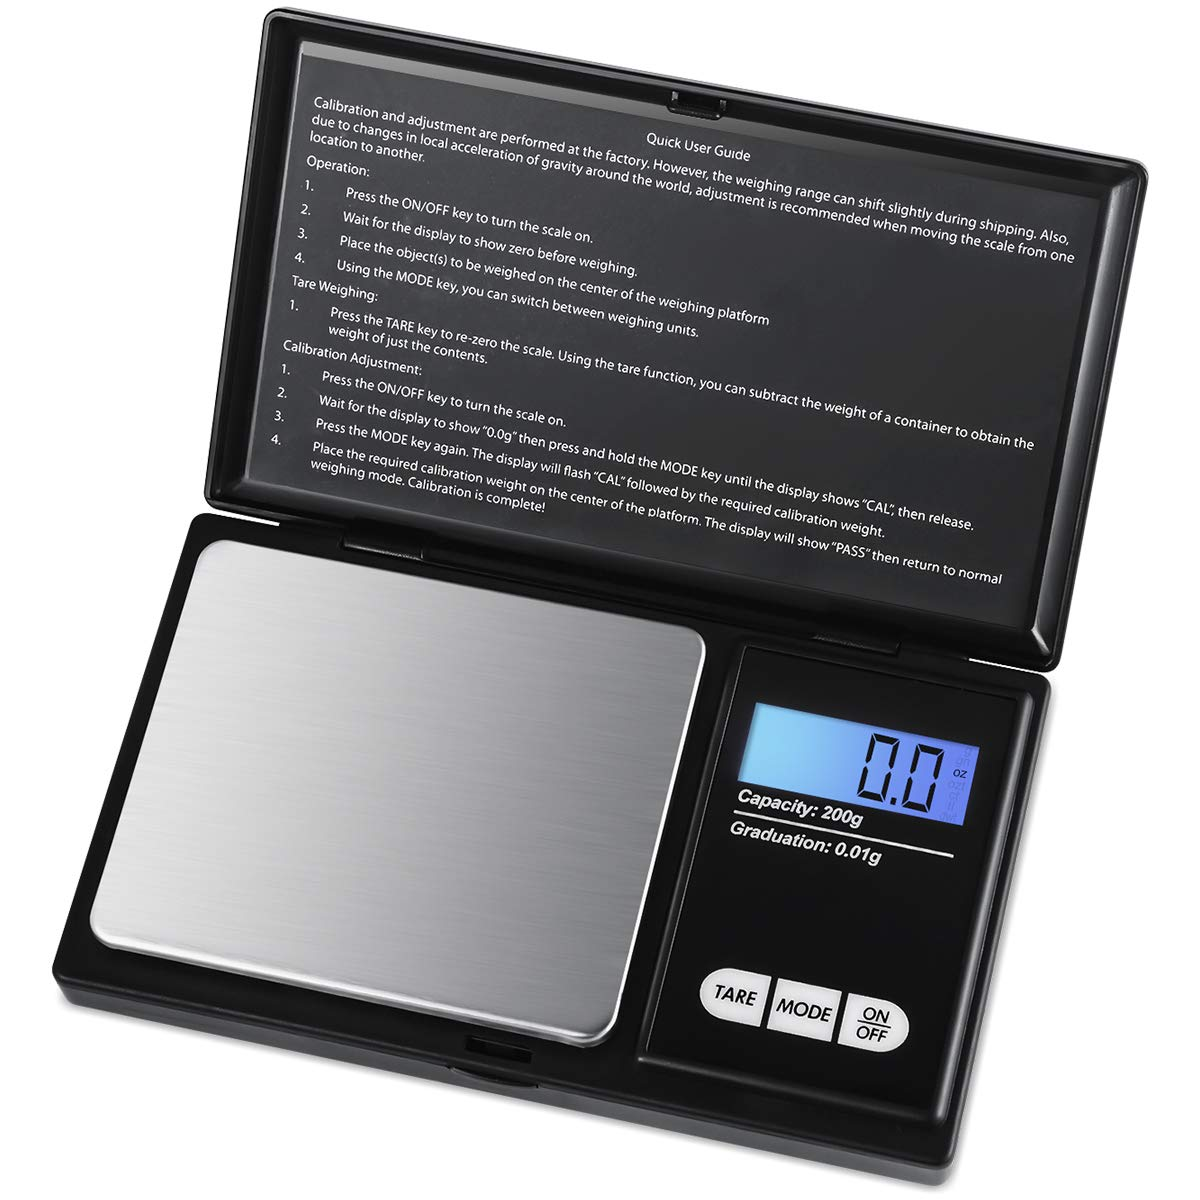 AMIR Digital Pocket Scale, 200g 0.01g/ 0.001oz Pocket Scale, Lab Instruments Scale with 7 Units, LCD Backlit Display, Tare Function, Auto Off, Stainless Steel & Slim Design (Battery Included)